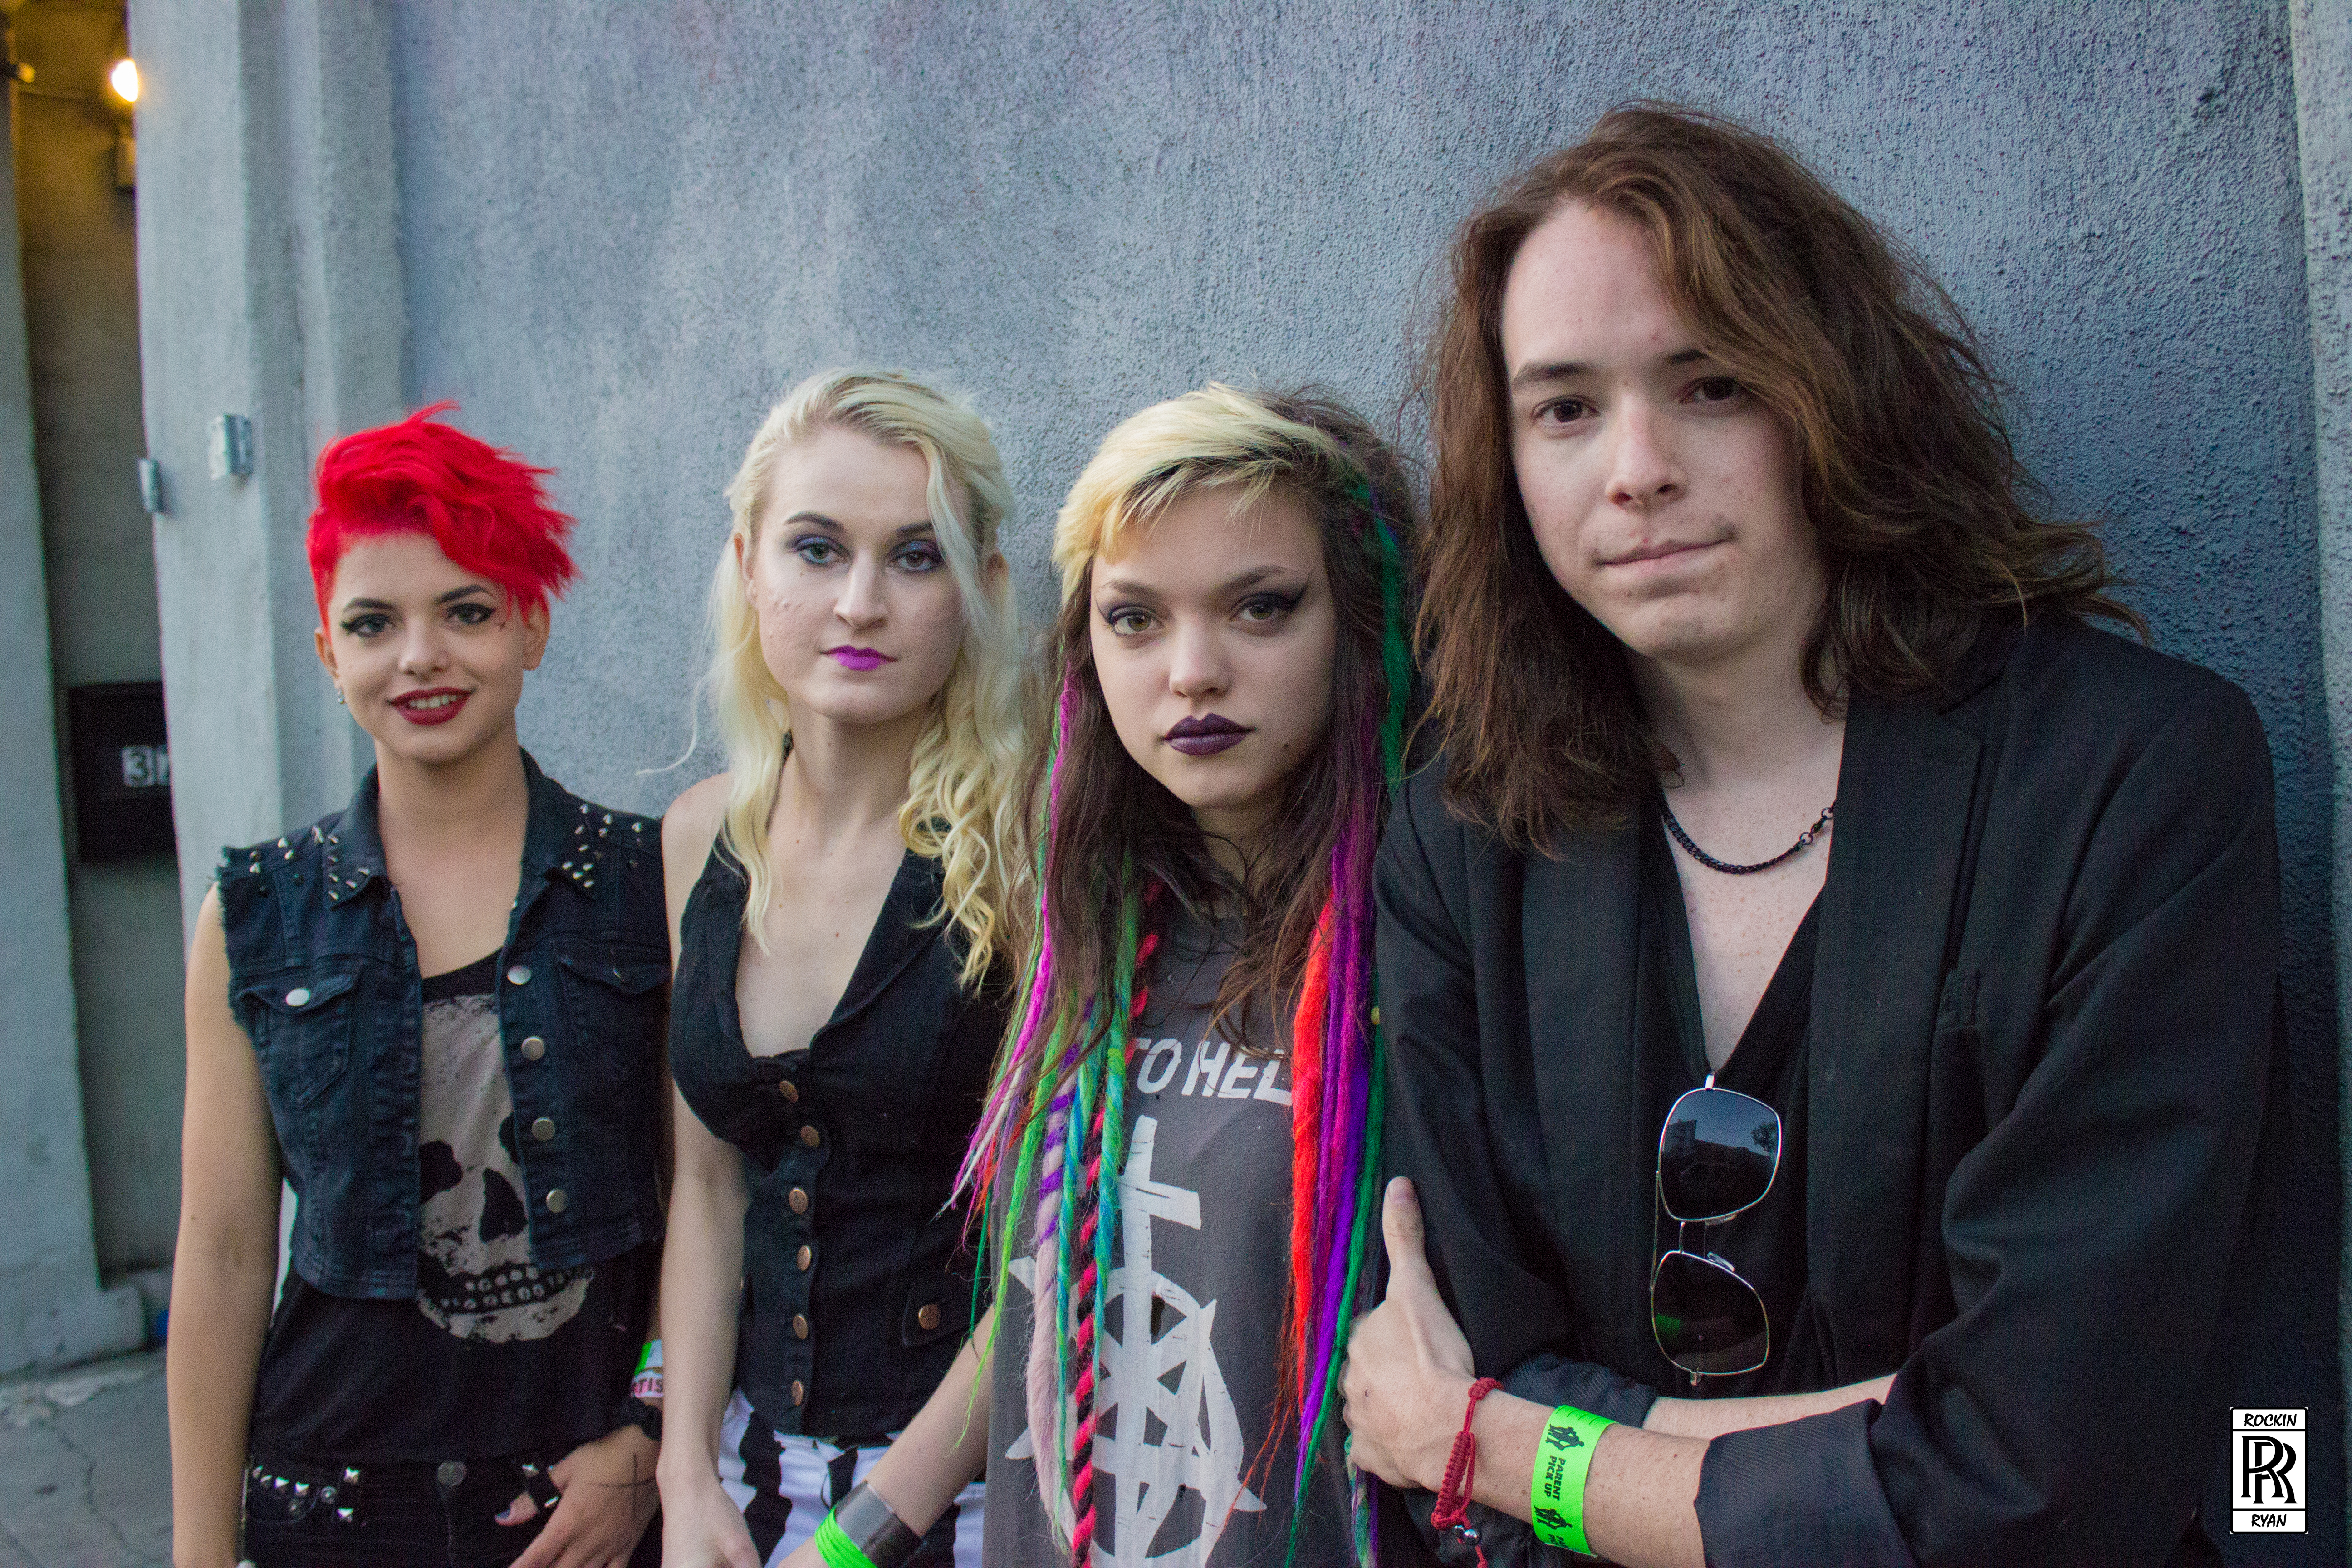 Cherri Bomb lights up the DNA Lounge in SF with their